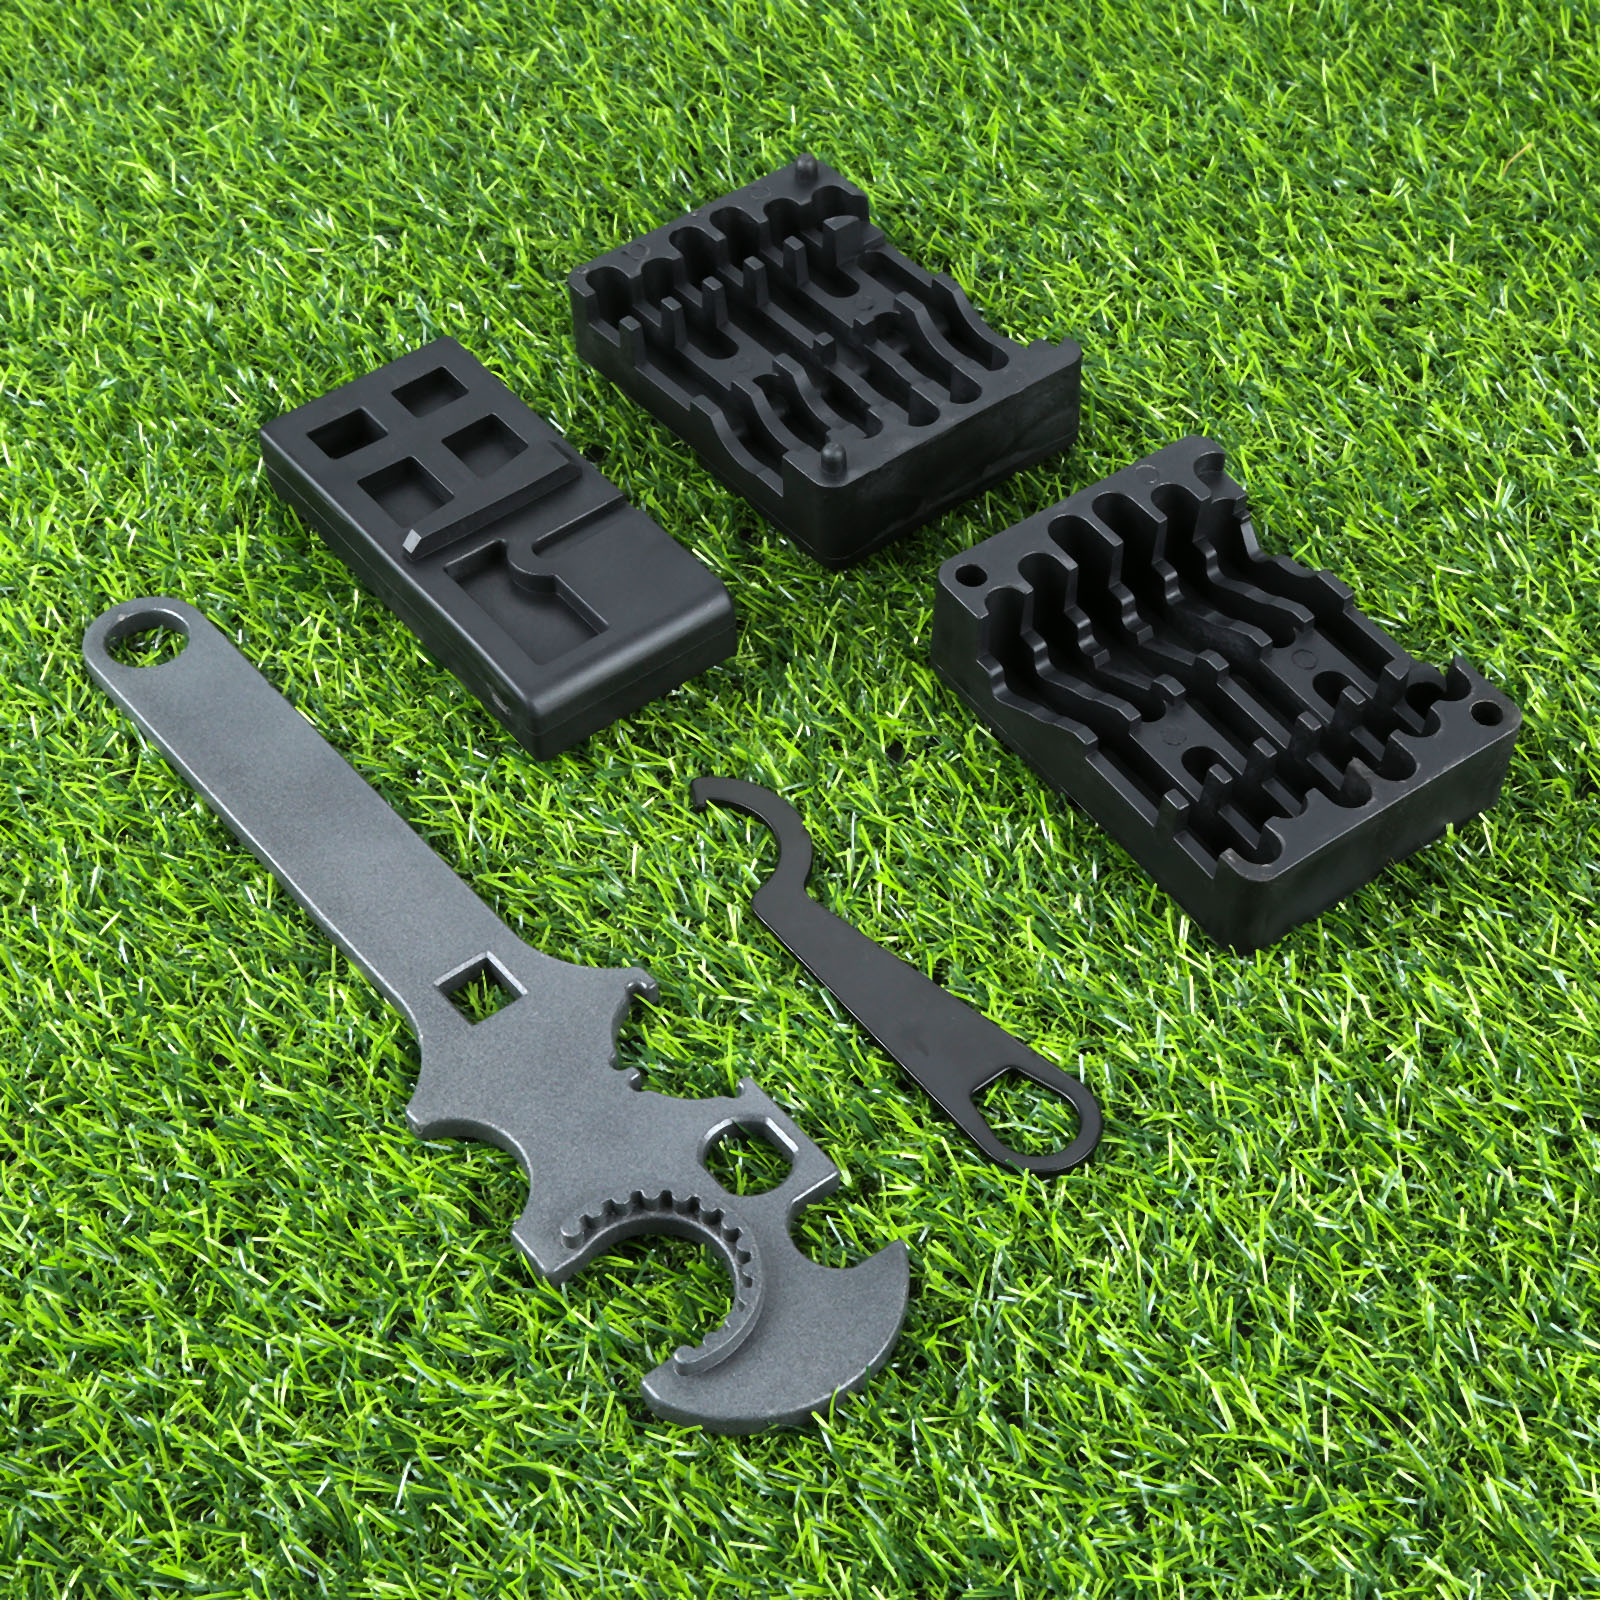 Tactical Professional 4pcs/Set Lower& Upper Vise Block & Wrench Tool AR15 Strong Portable Outdoor Tools Hunting Gun Accessories